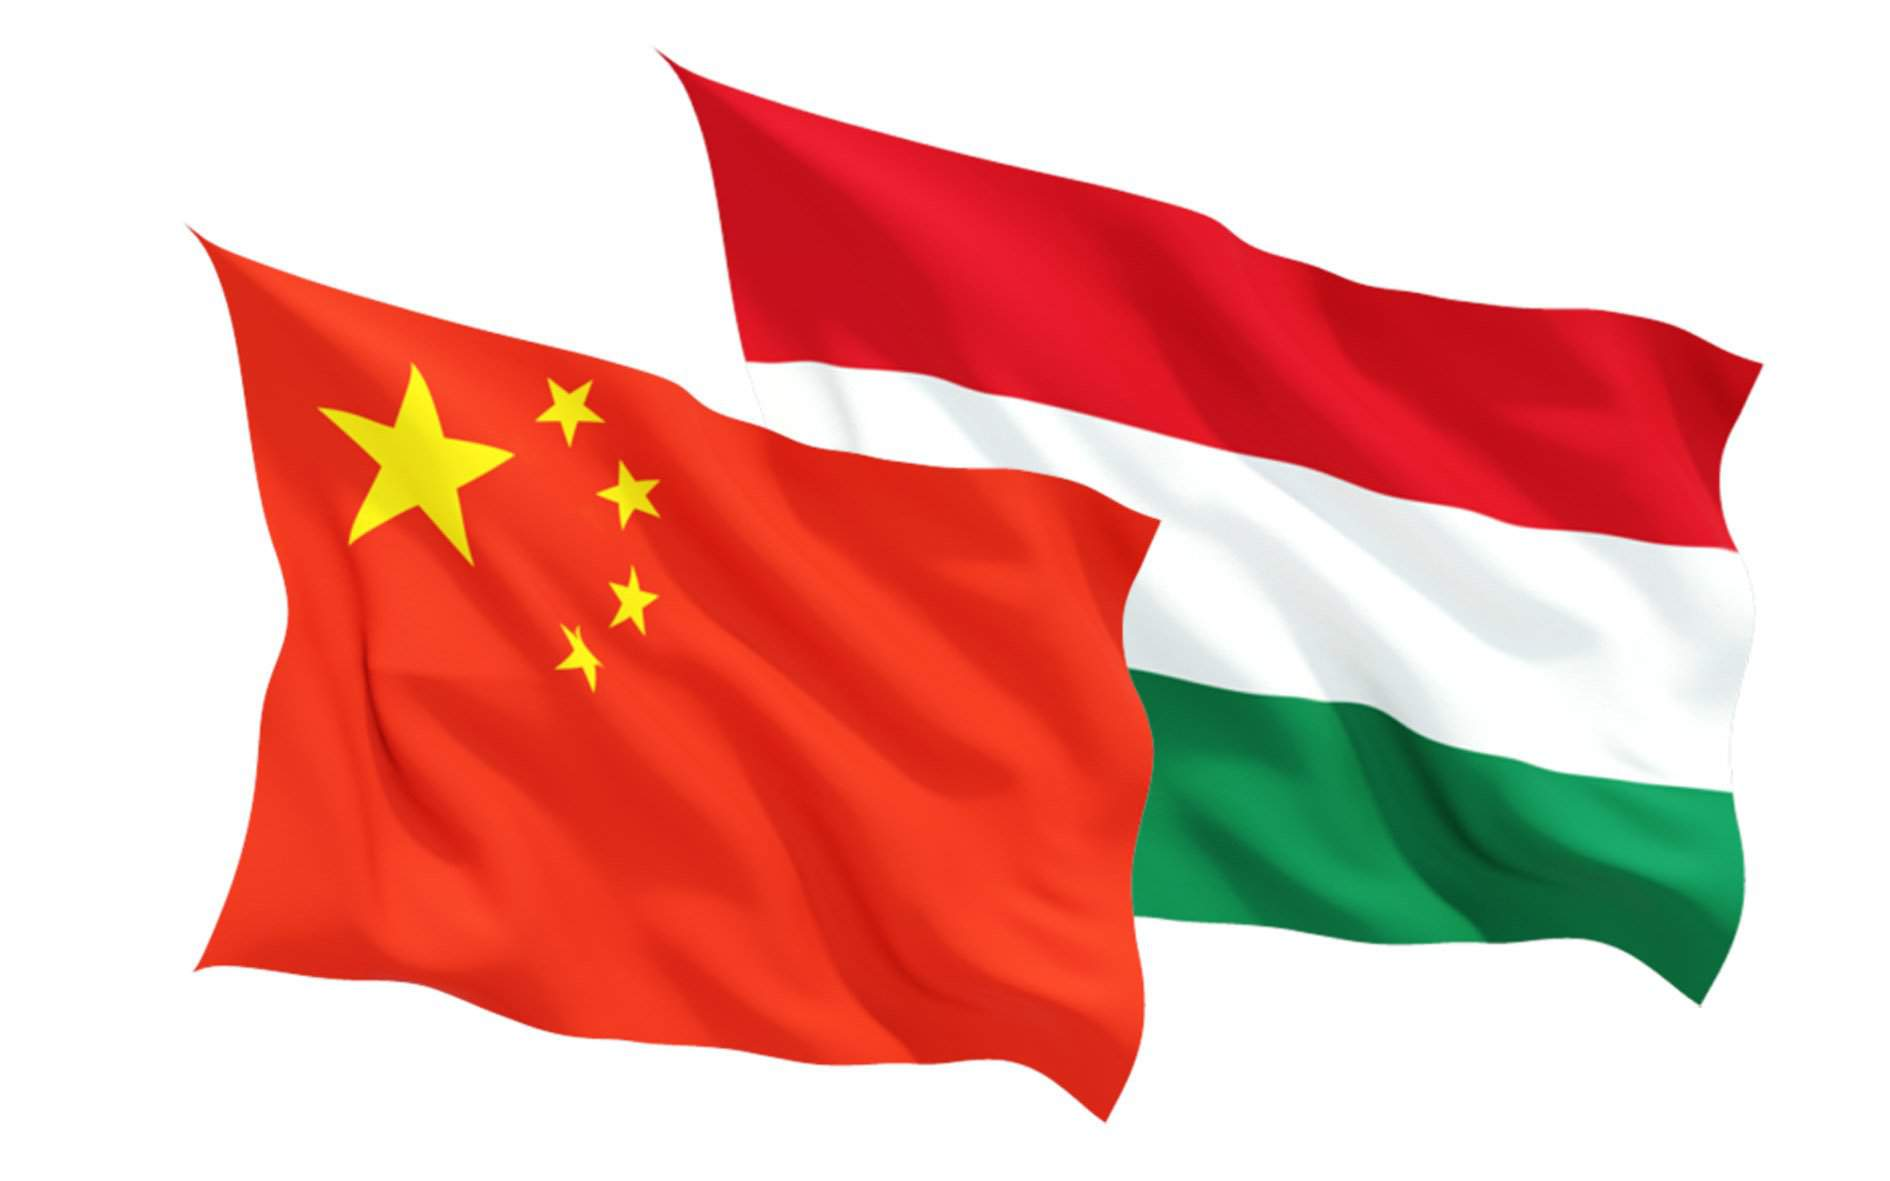 Budapest-Belgrade rail upgrade deal signed with China